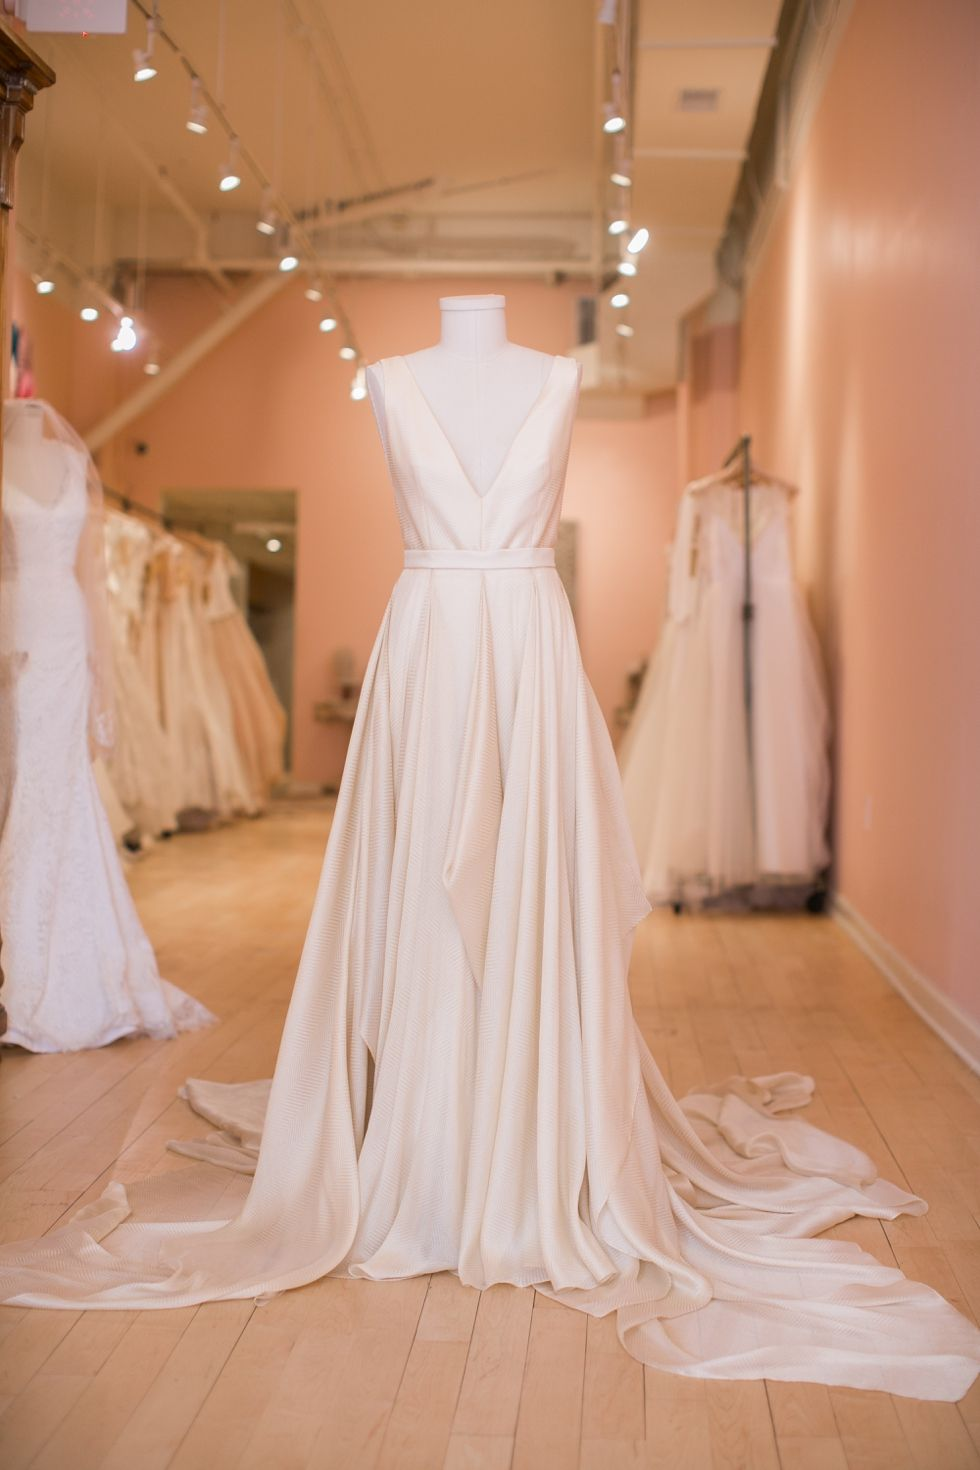 2c42457dc Azurite - Carol Hannah Bridal - lovely bridal shop philadelphia - Old City  wedding Photography